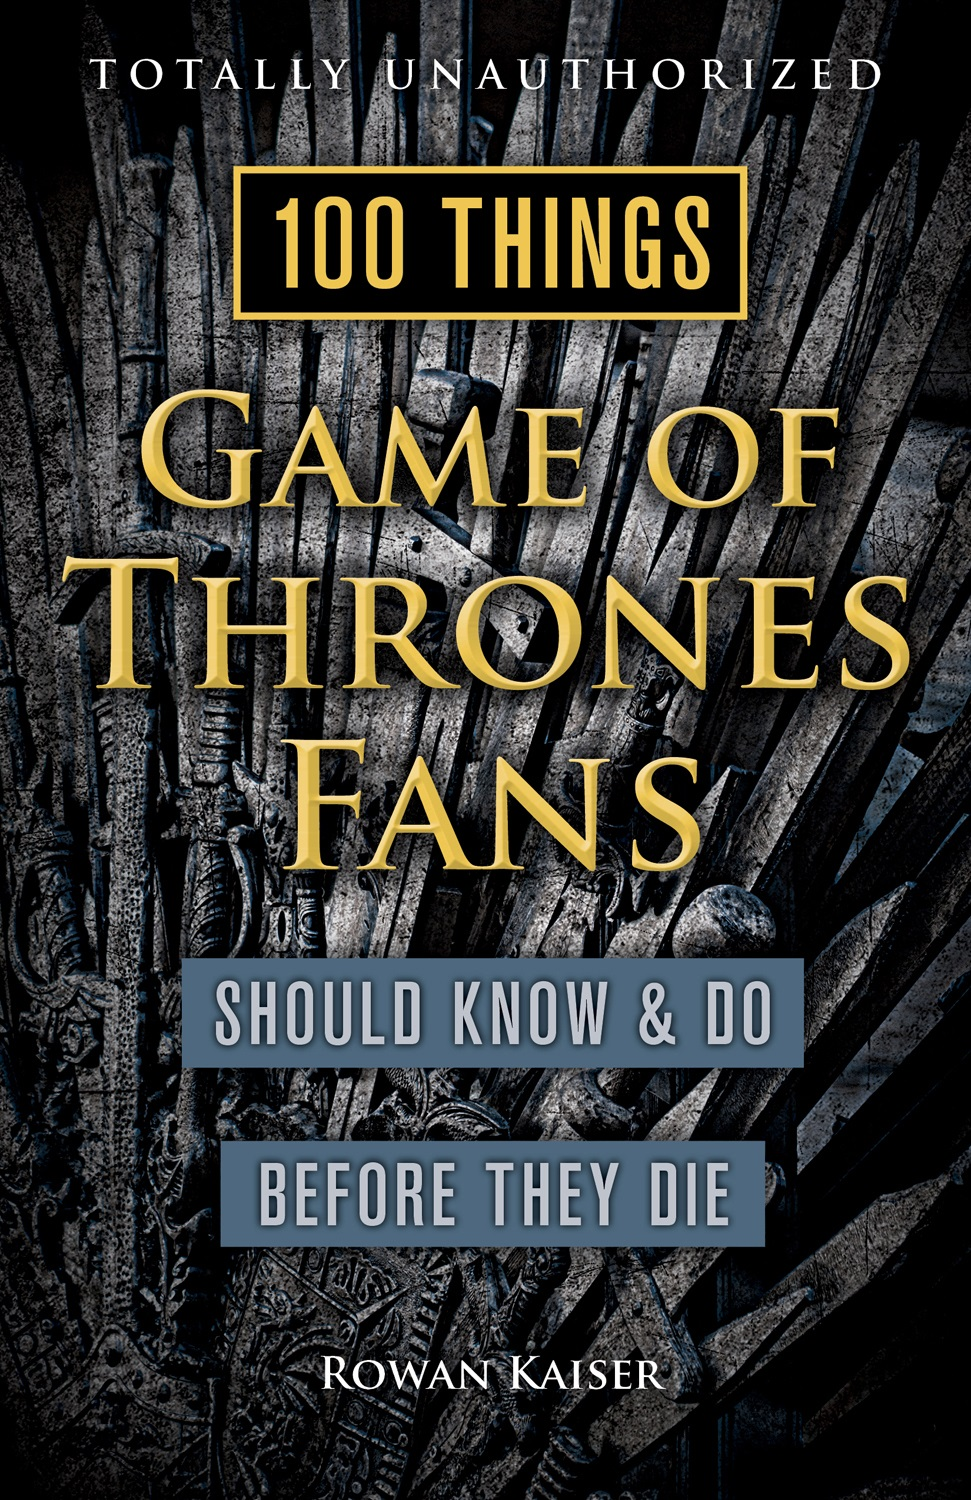 100 Game of Thrones Things to do cover